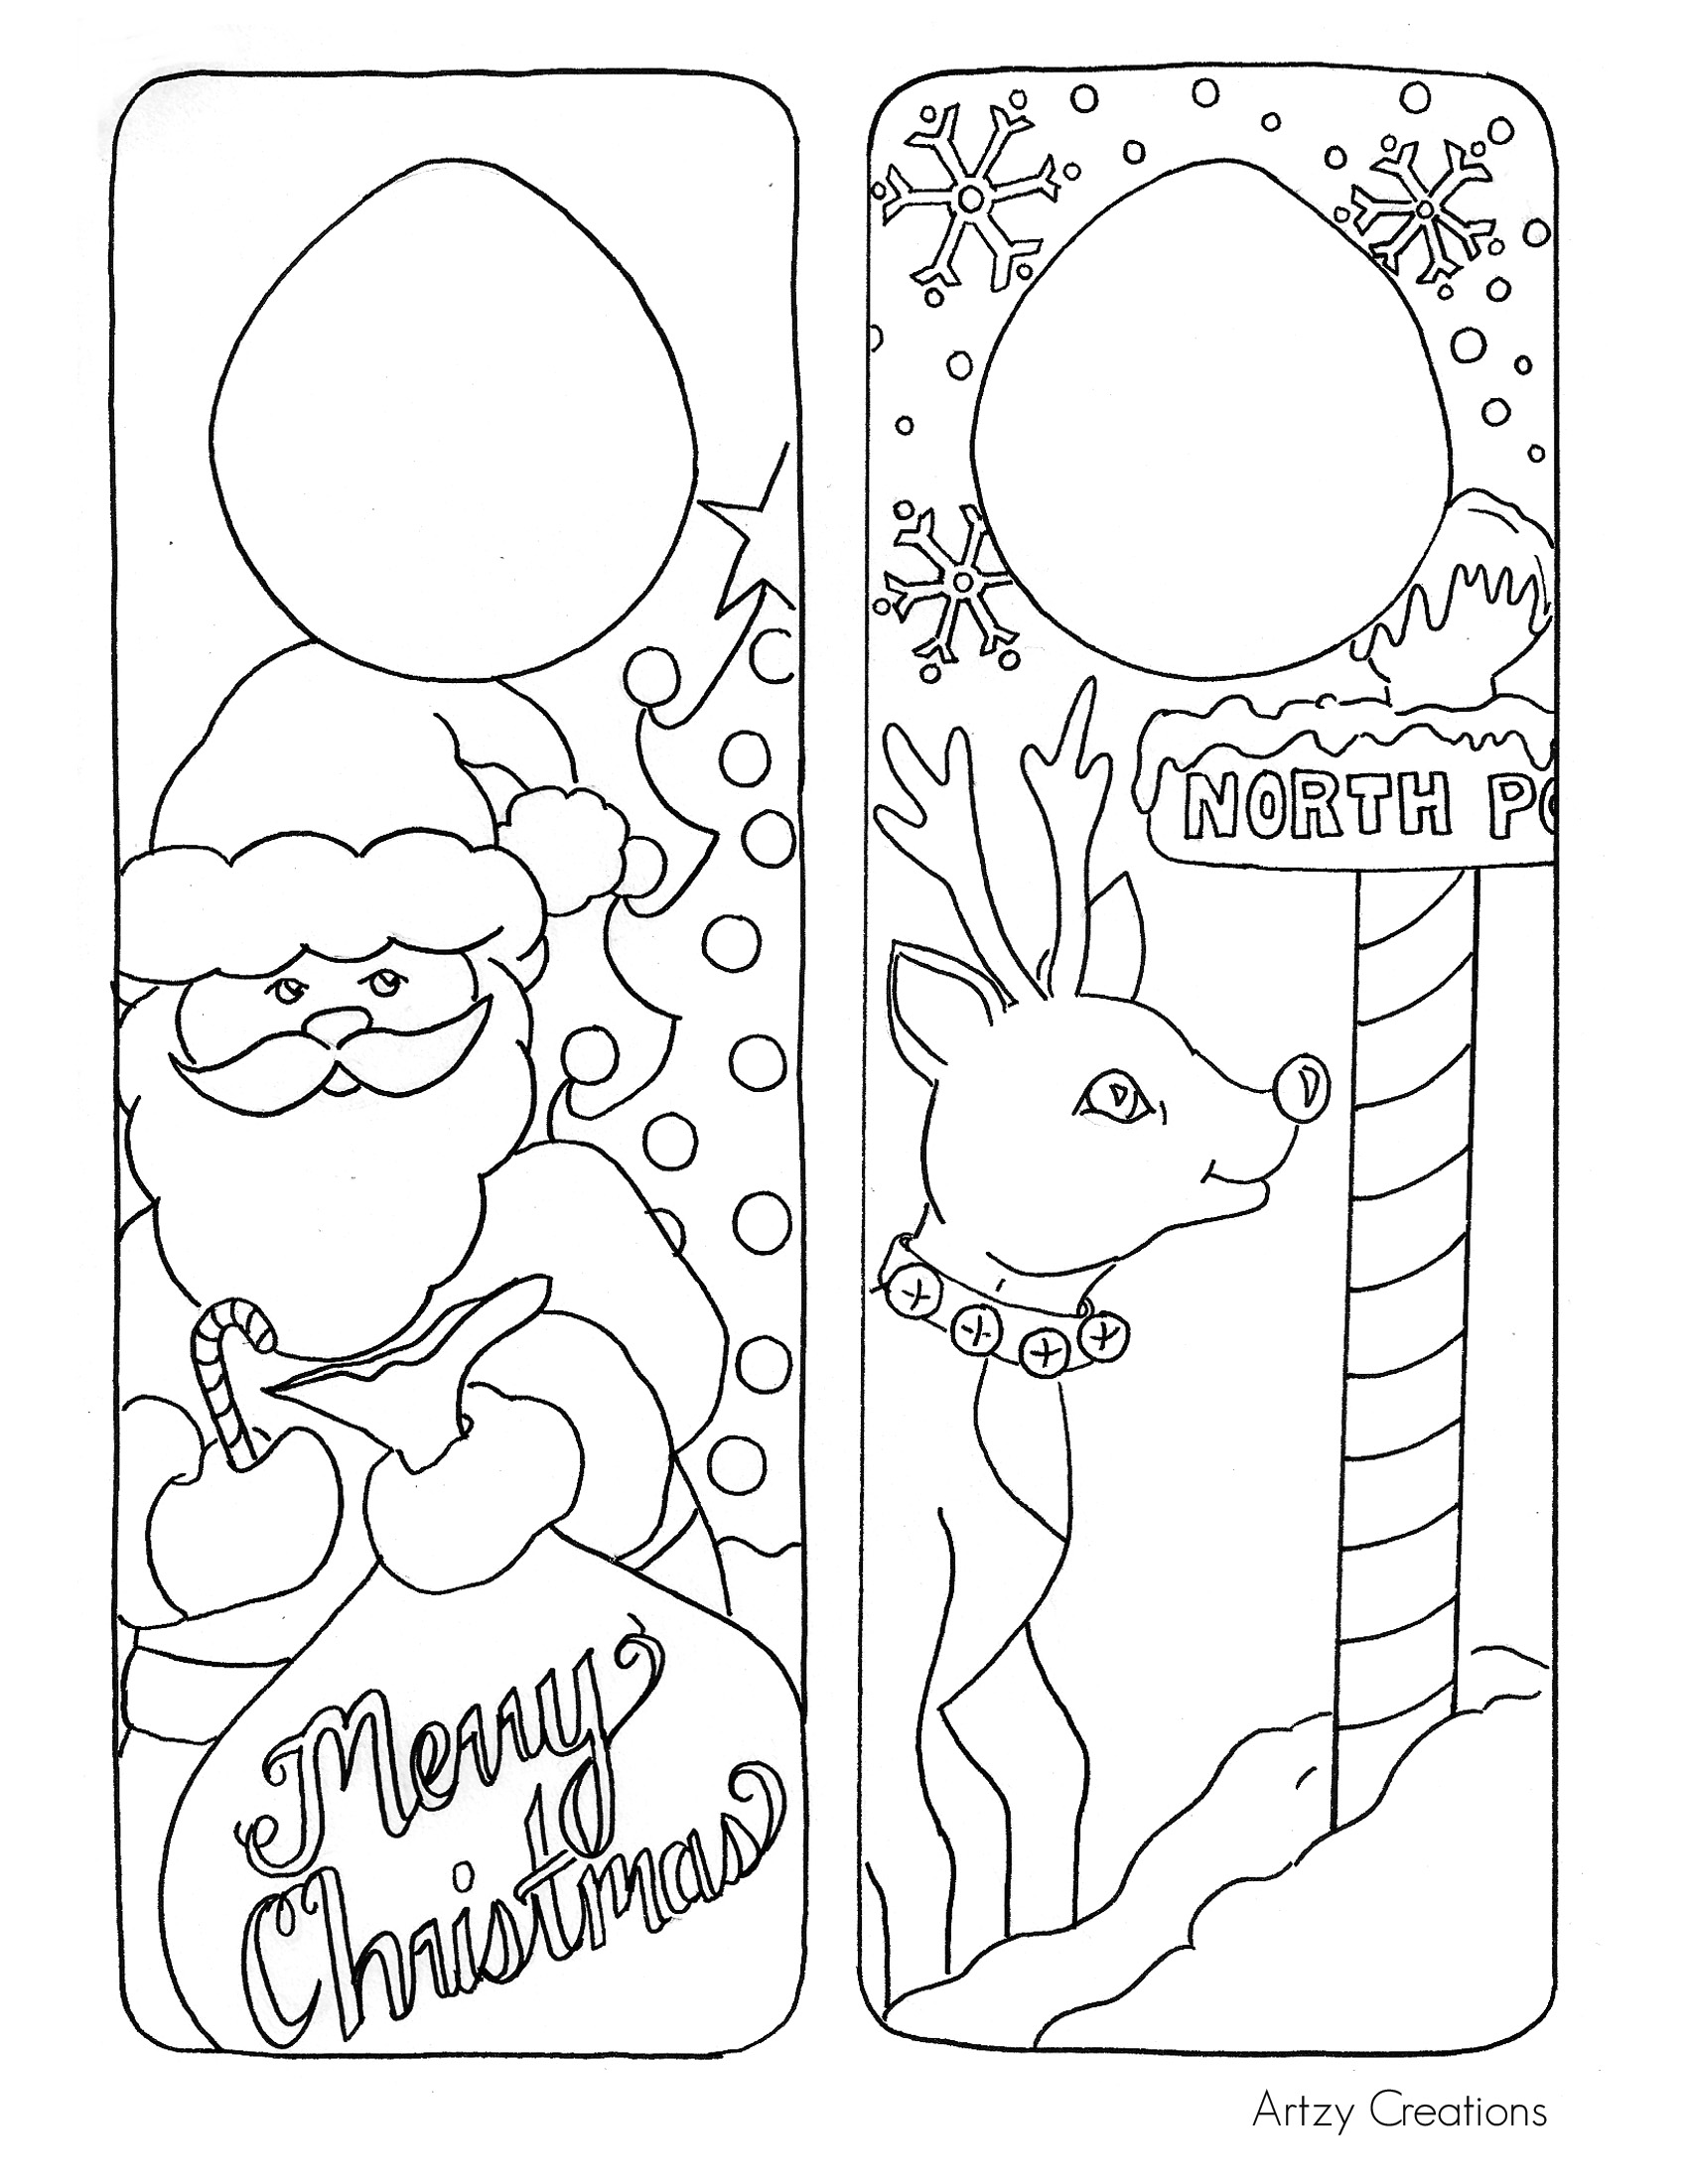 Christmas Coloring Sheets That You Can Print With Page Door Hanger Printables The 36th AVENUE